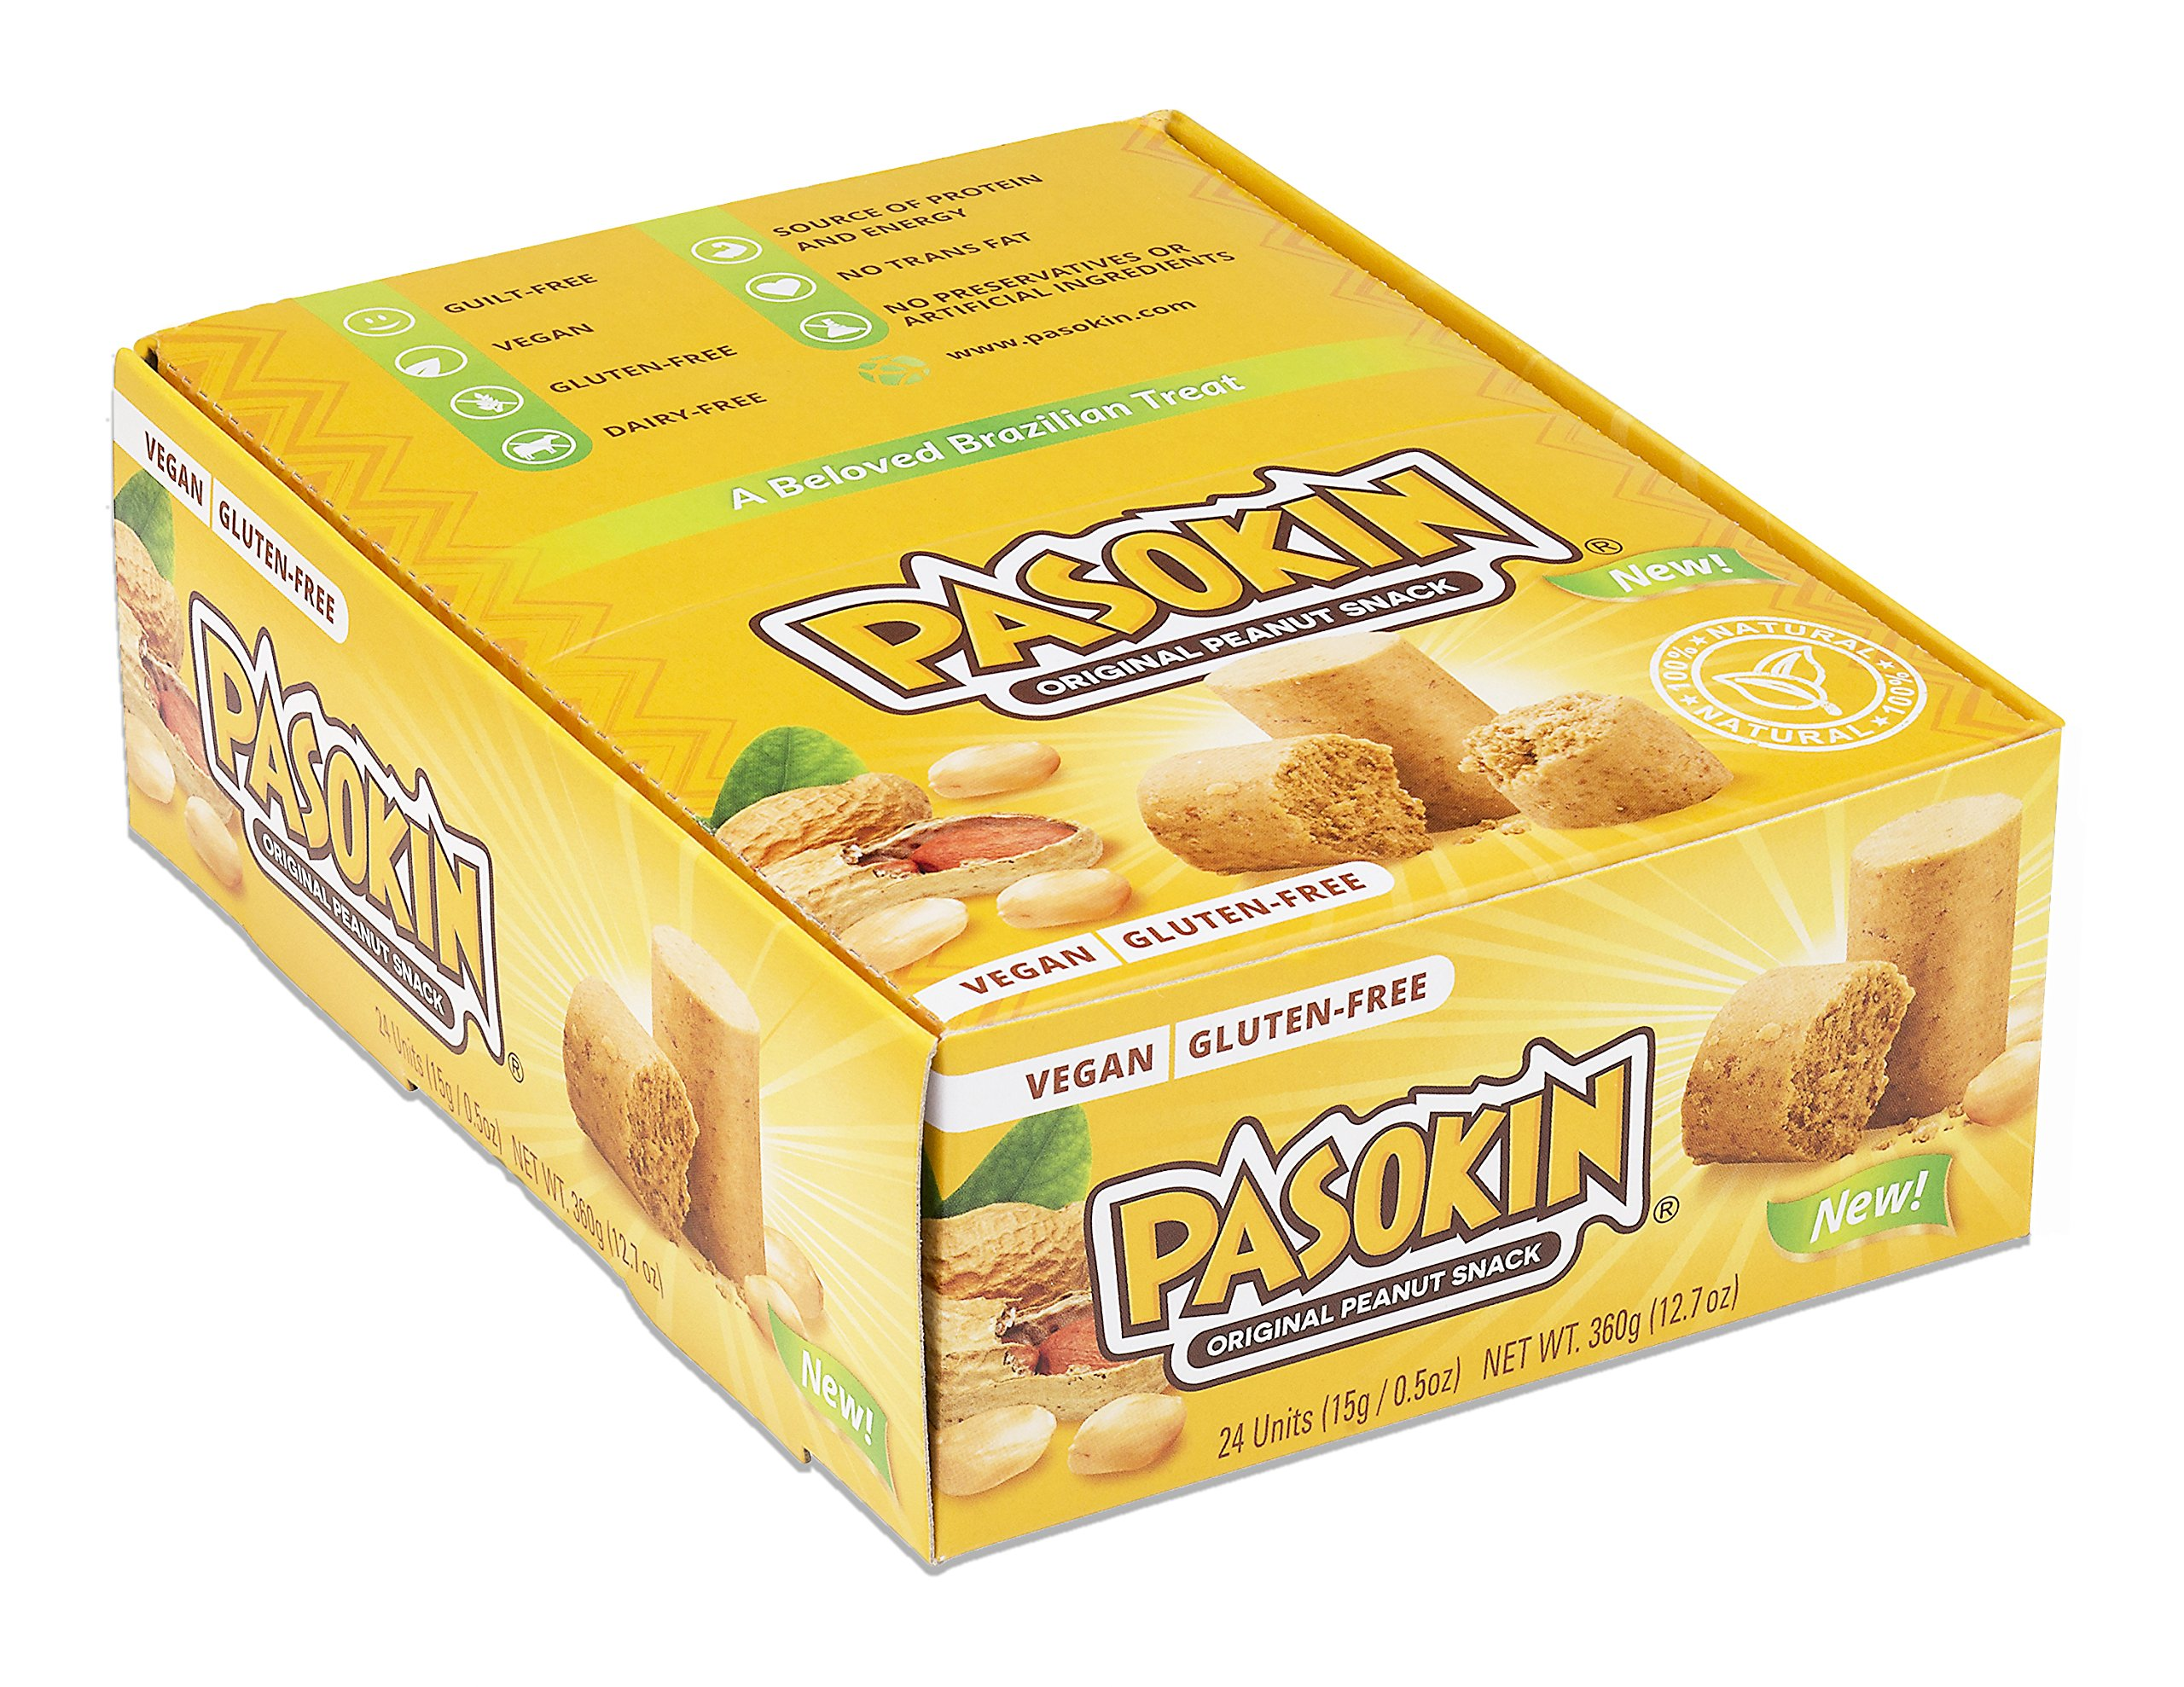 PASOKIN | Original Peanut Butter Snack | Gluten Free, Vegan, All Natural, Made